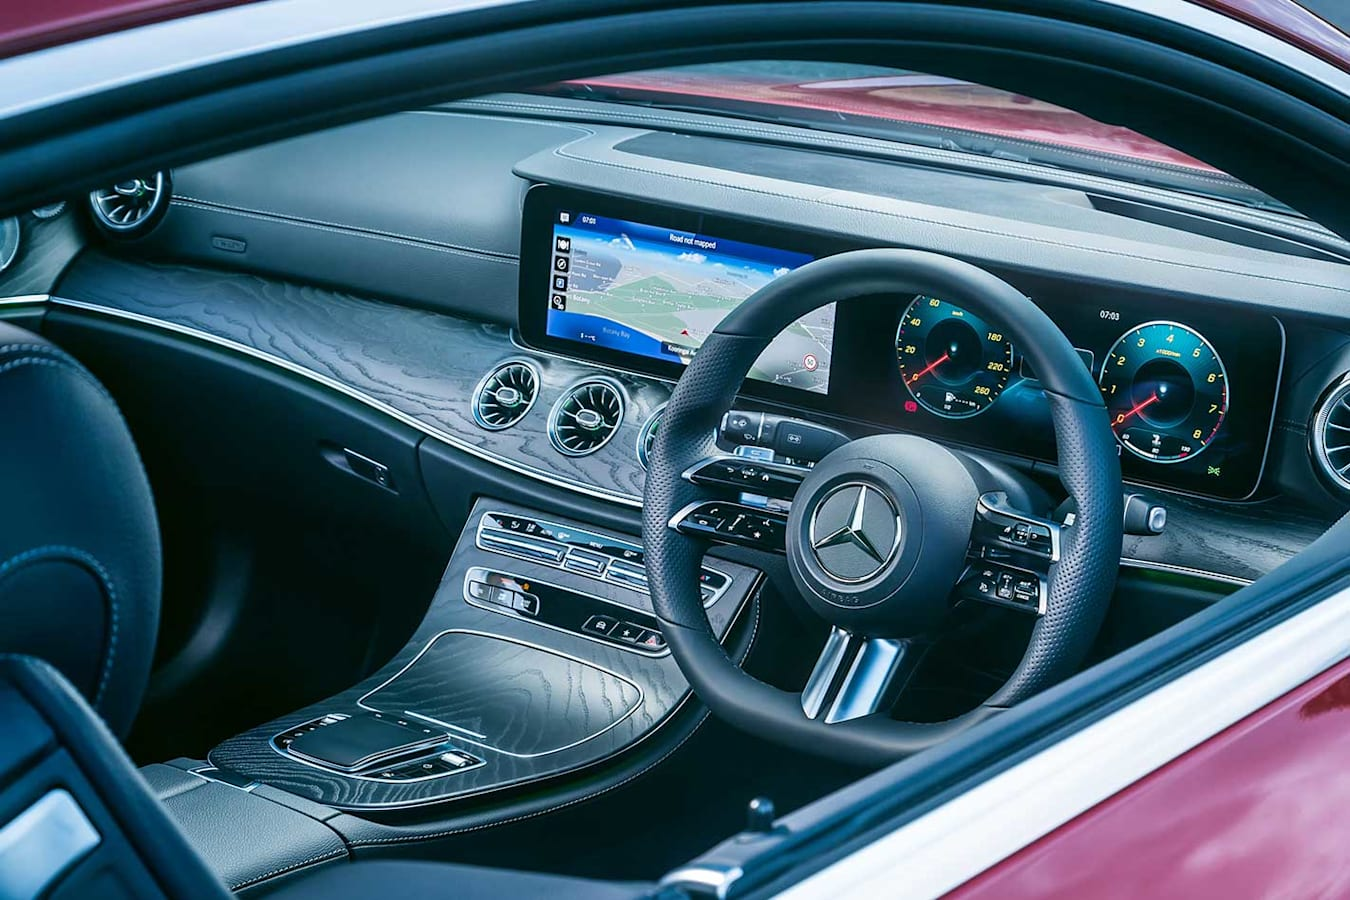 Archive Whichcar 2020 12 01 1 2021 Mercedes Benz E 300 Coupe MBUX